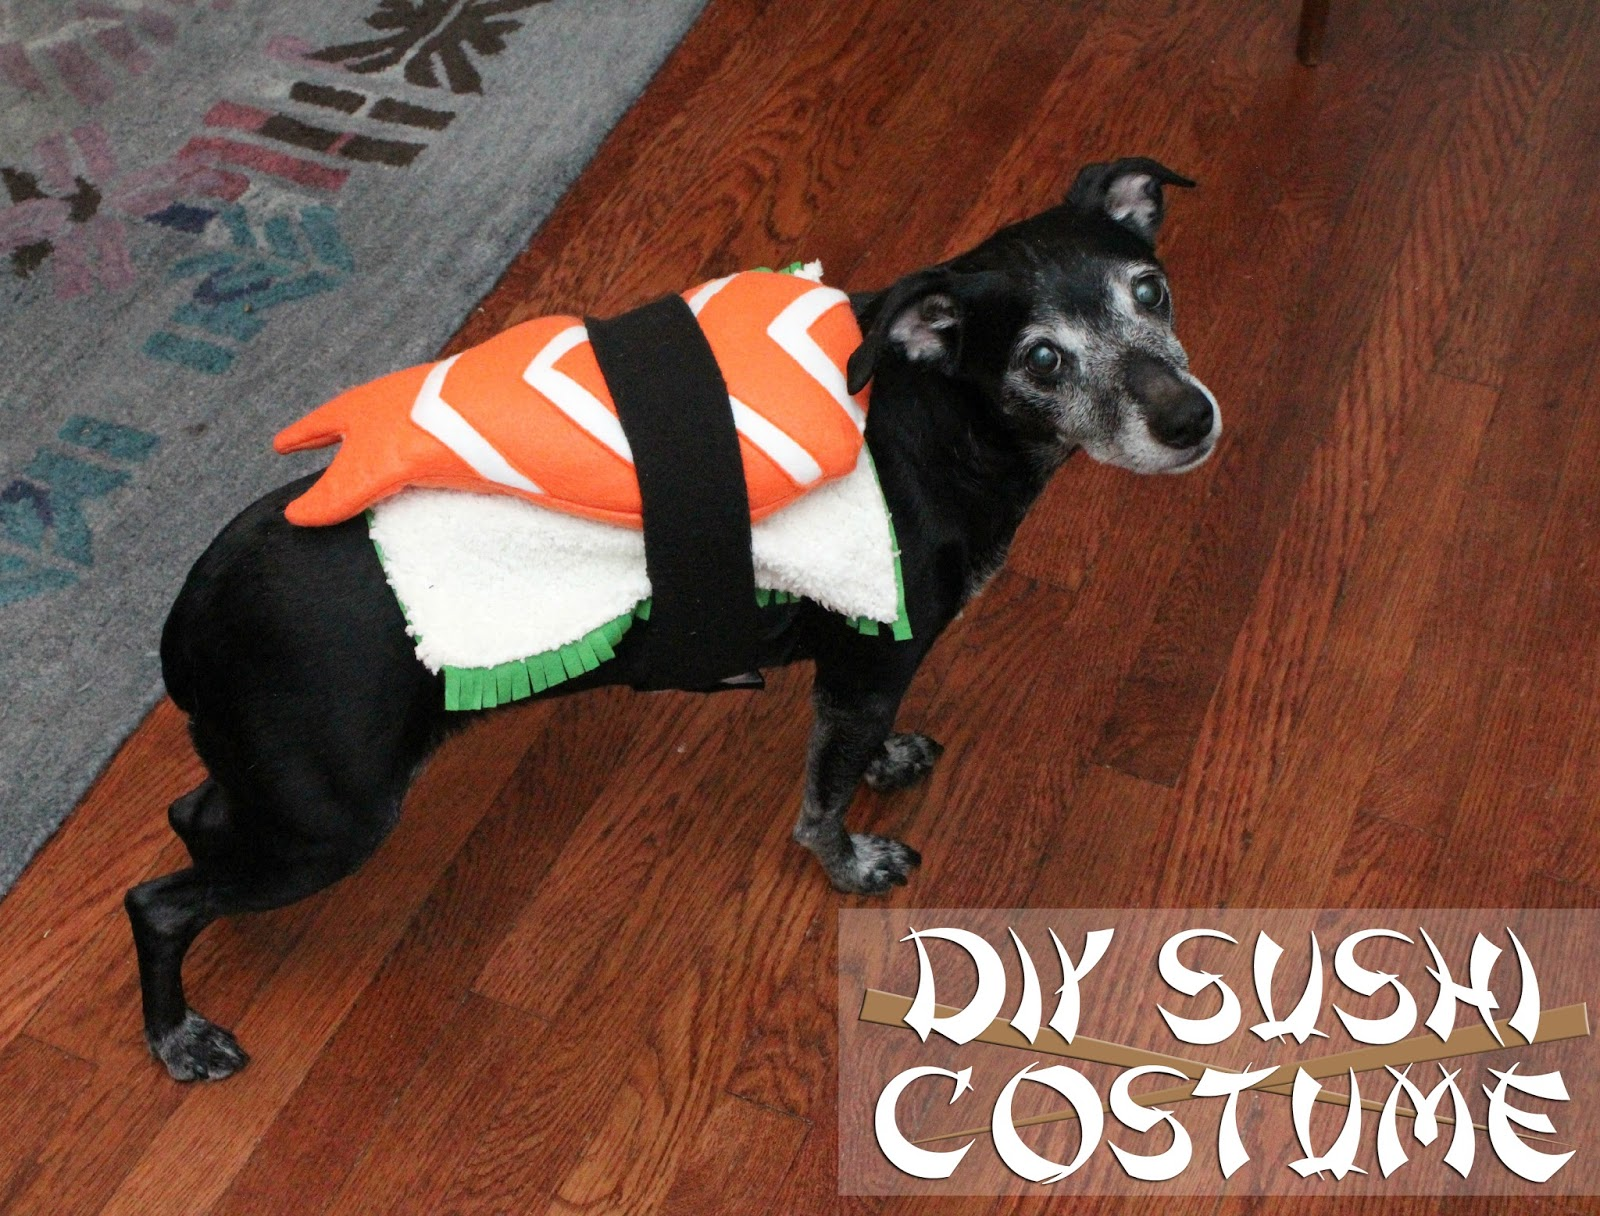 Can you believe Halloween is in 3 days?? My kids have already gotten over a pound of candy each from a parade and church event we attended this weekend ... & EAT+SLEEP+MAKE: DIY Sushi Costume for a Dog